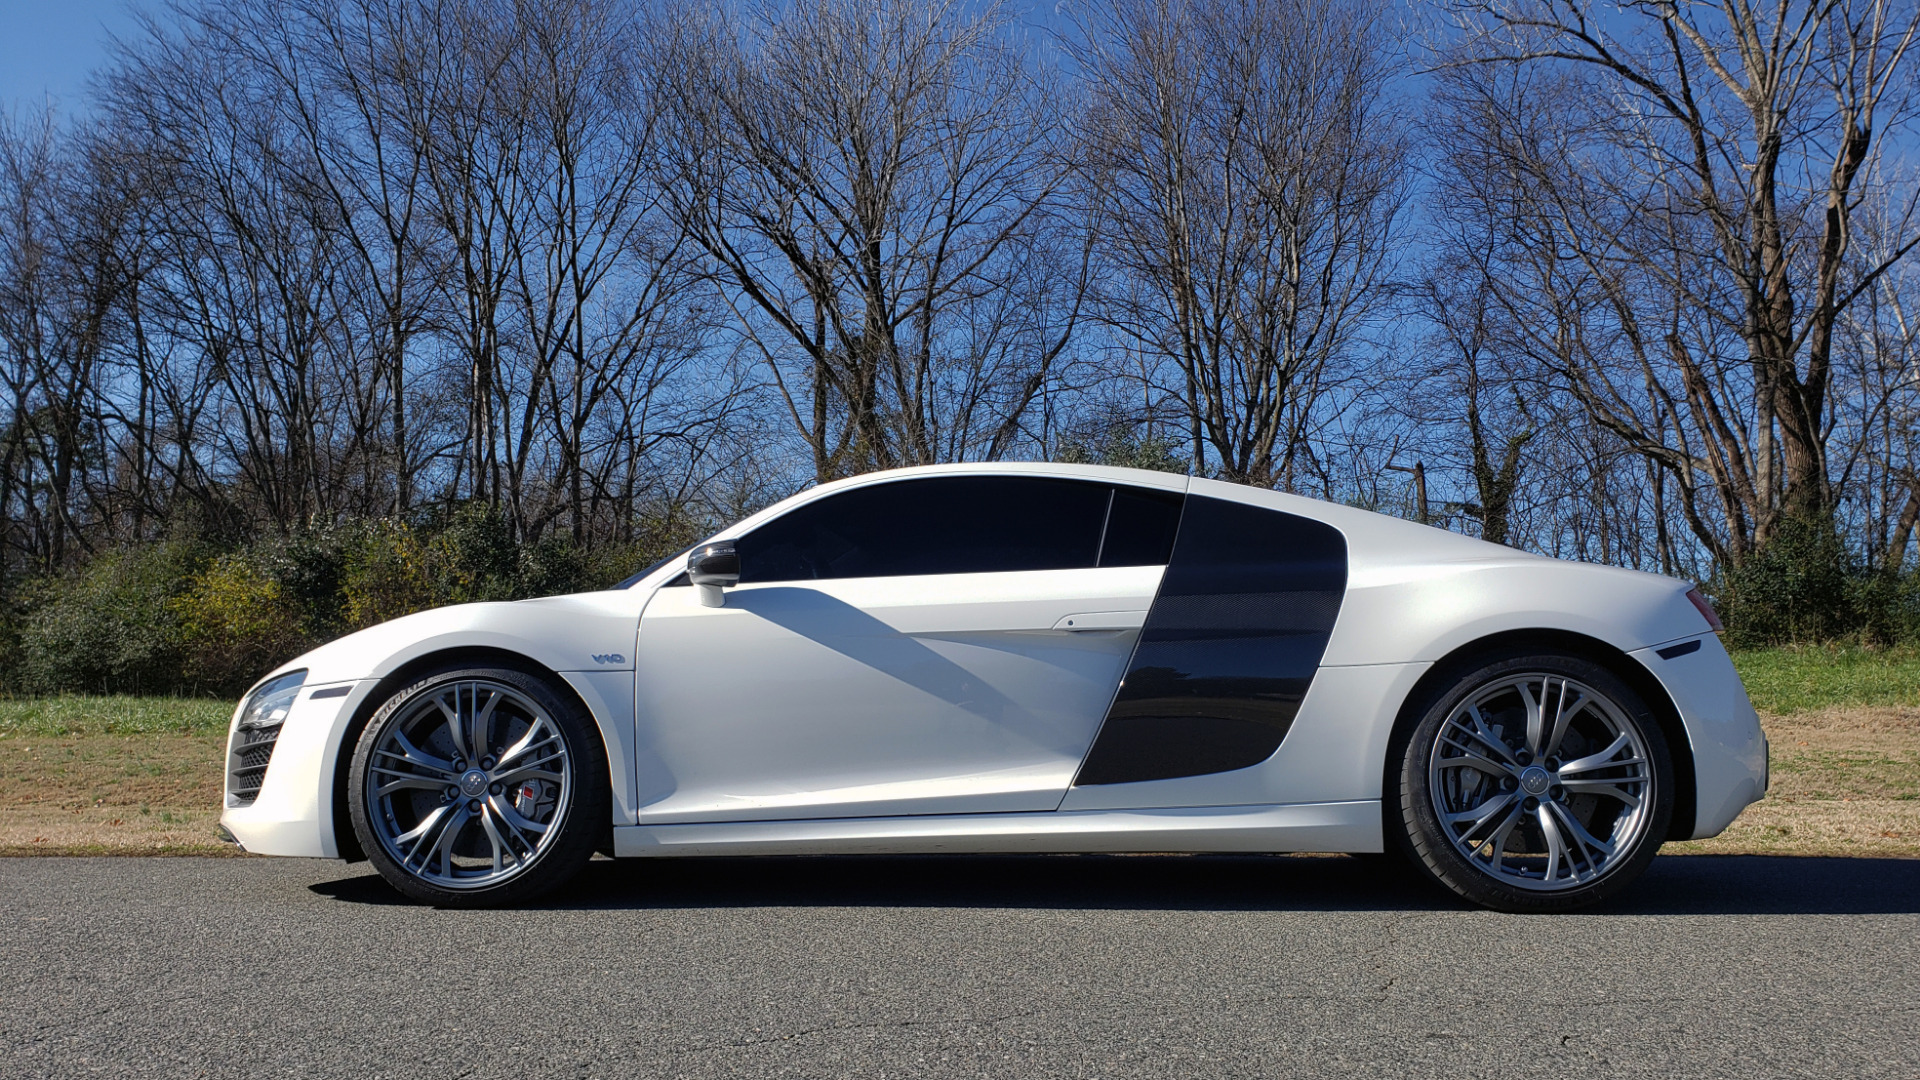 Used 2015 Audi R8 V10 PLUS / S-TRONIC / B&O SOUND / SPORT EXH / REARVIEW for sale Sold at Formula Imports in Charlotte NC 28227 3